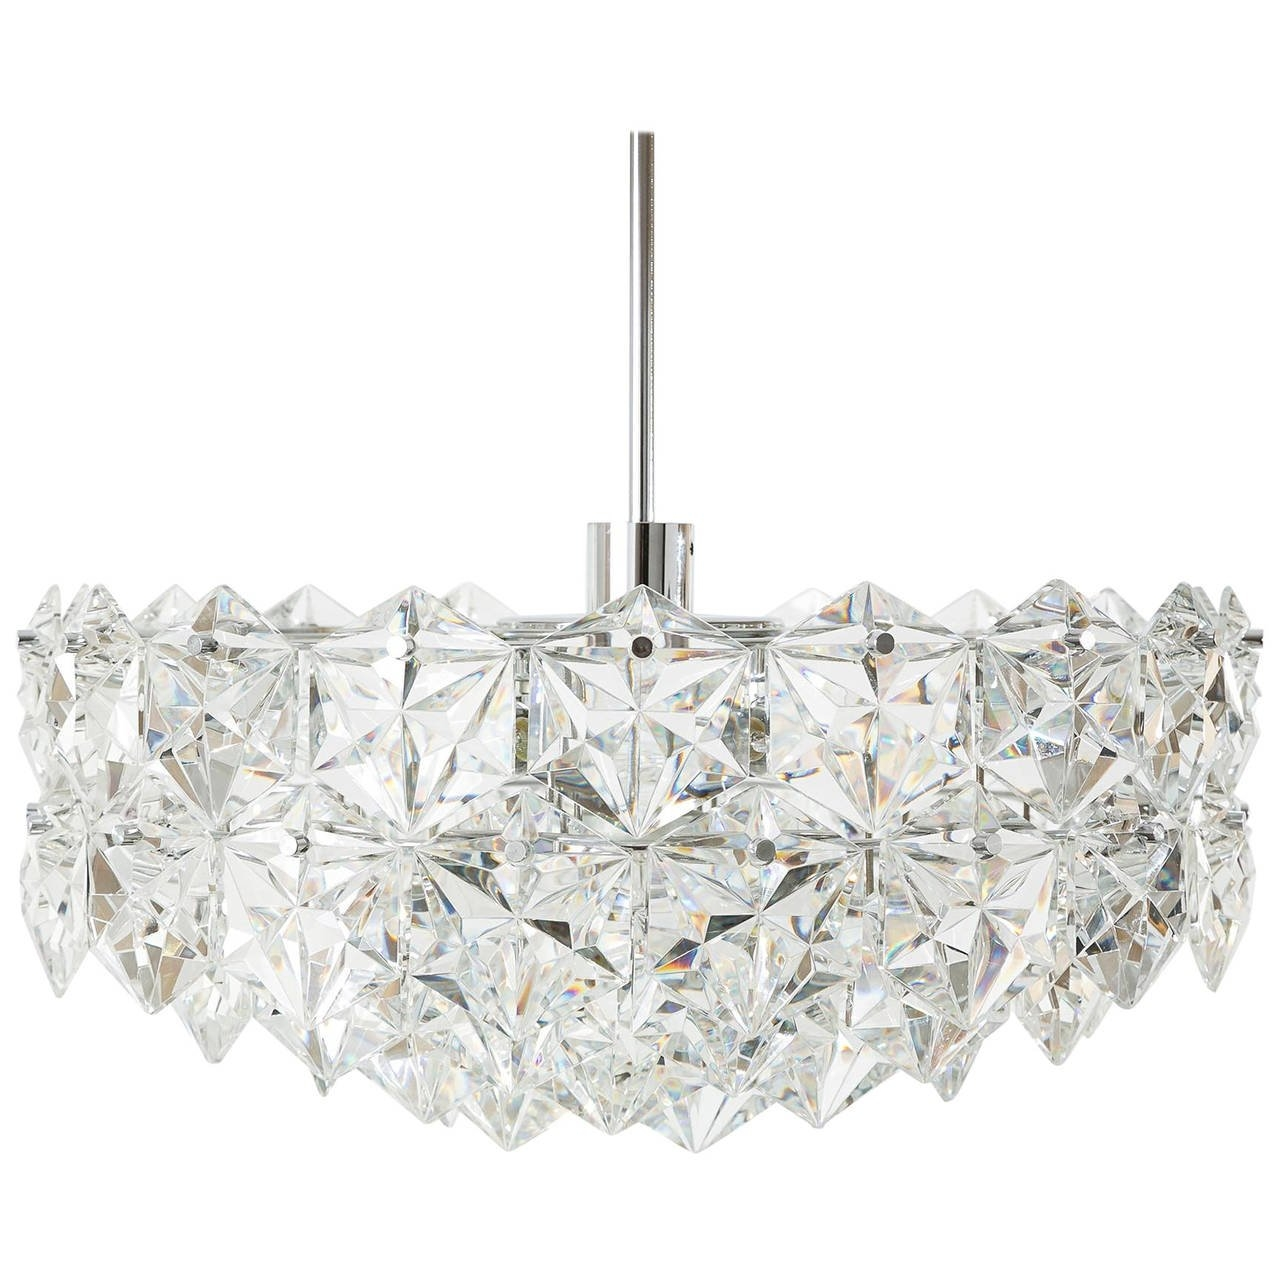 Large Kinkeldey Chandelier Or Flush Mount Light Fixture Crystal With Regard To Large Glass Chandelier (Image 10 of 15)